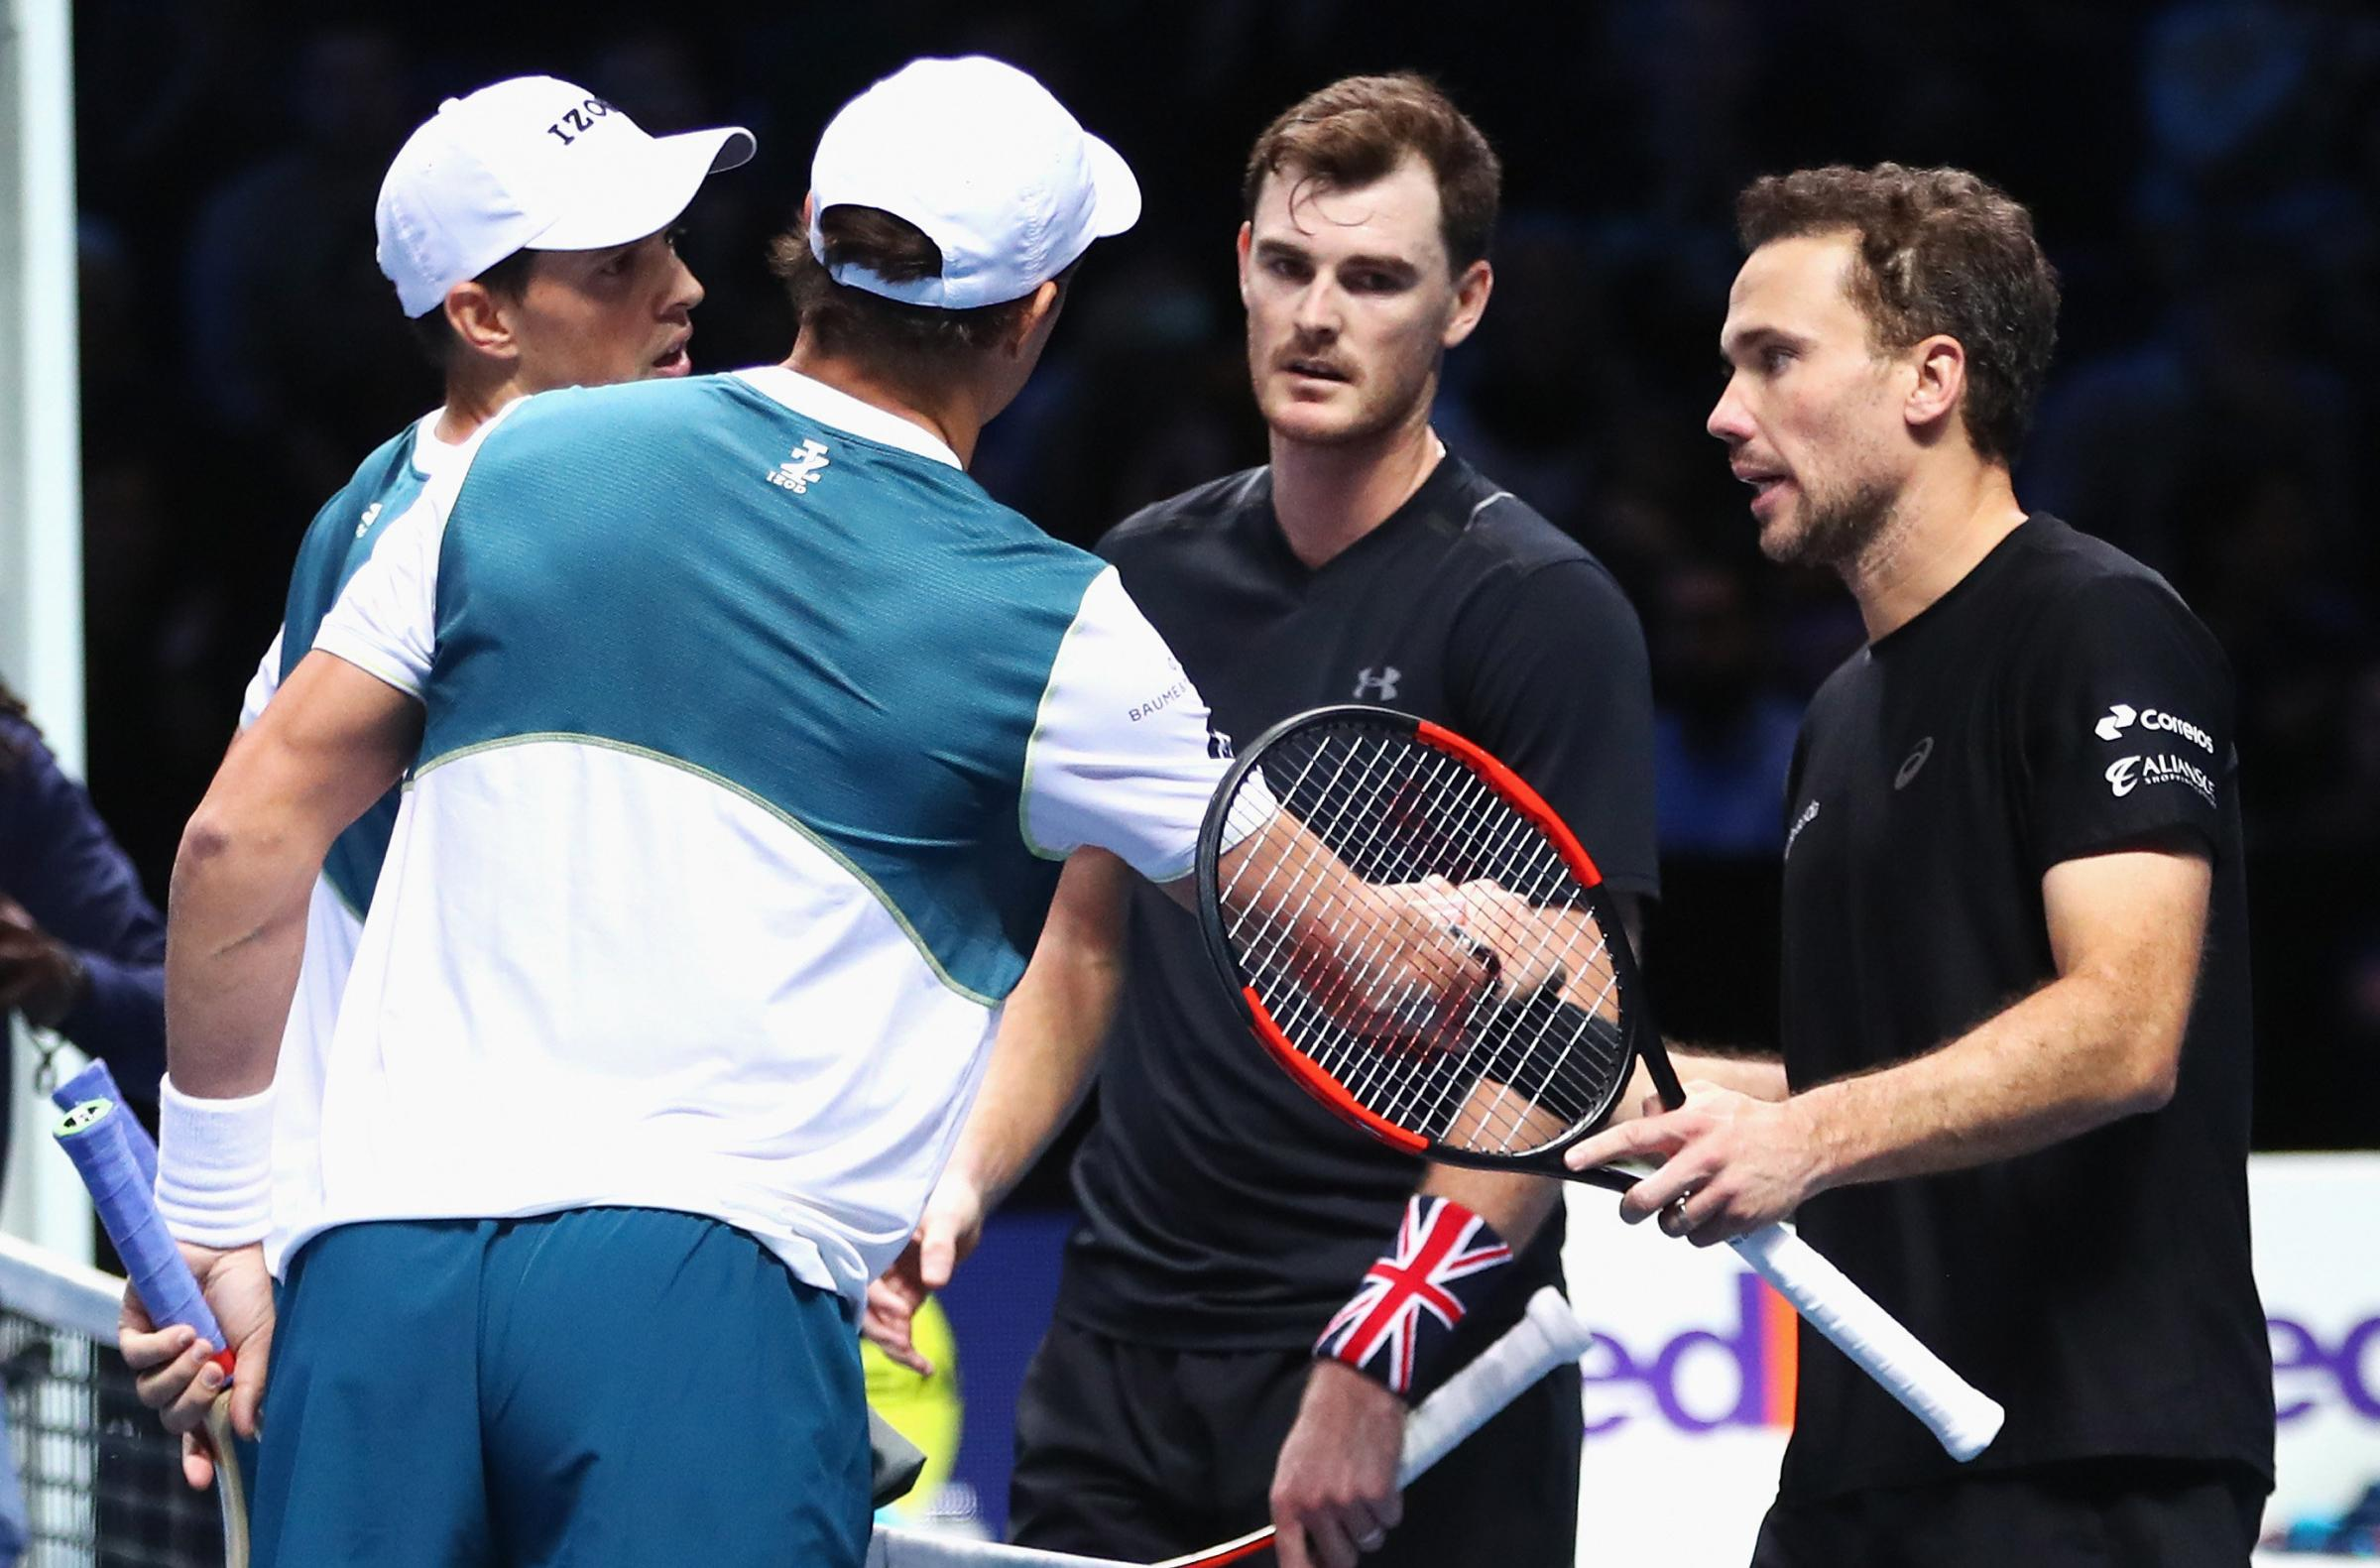 Bob and Mike Bryan of the United States defeated Jamie Murray and Bruno Soares